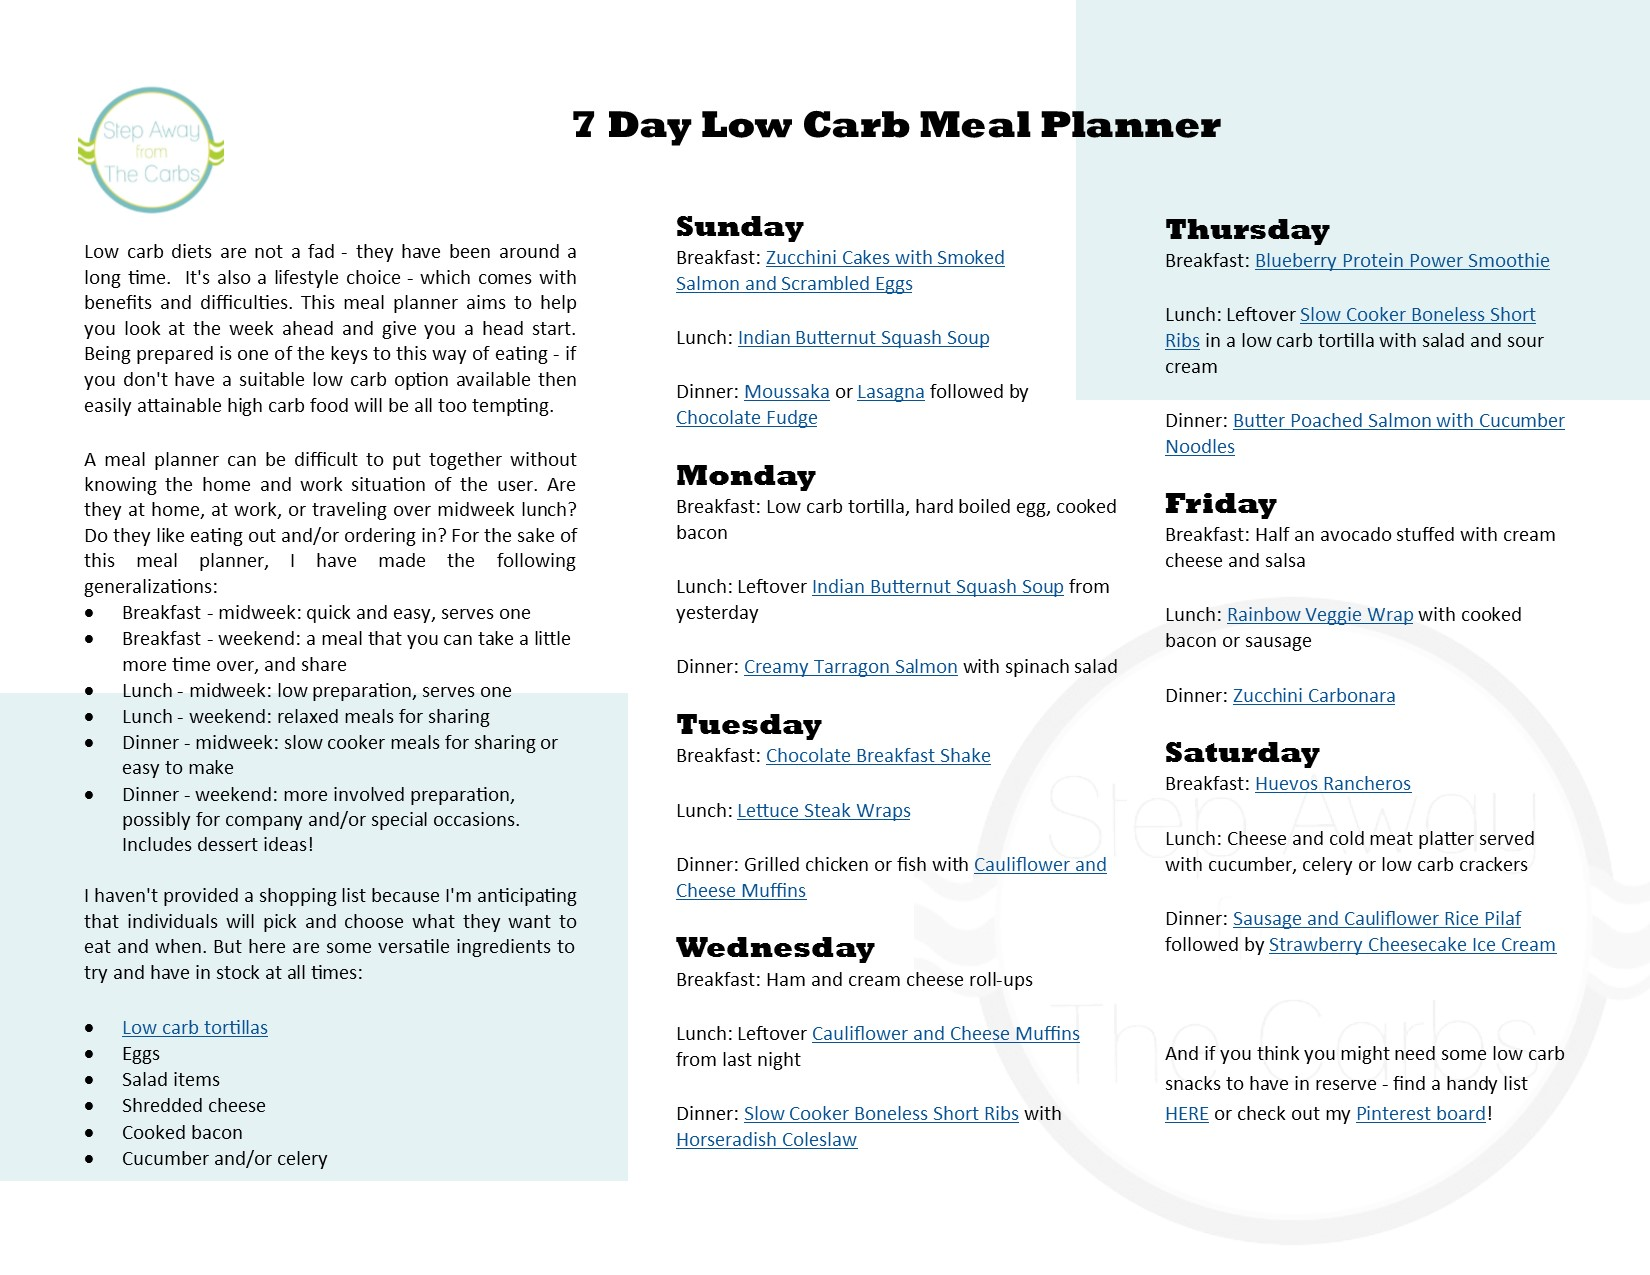 7 Day Low Carb Meal Planner Step Away From The Carbs